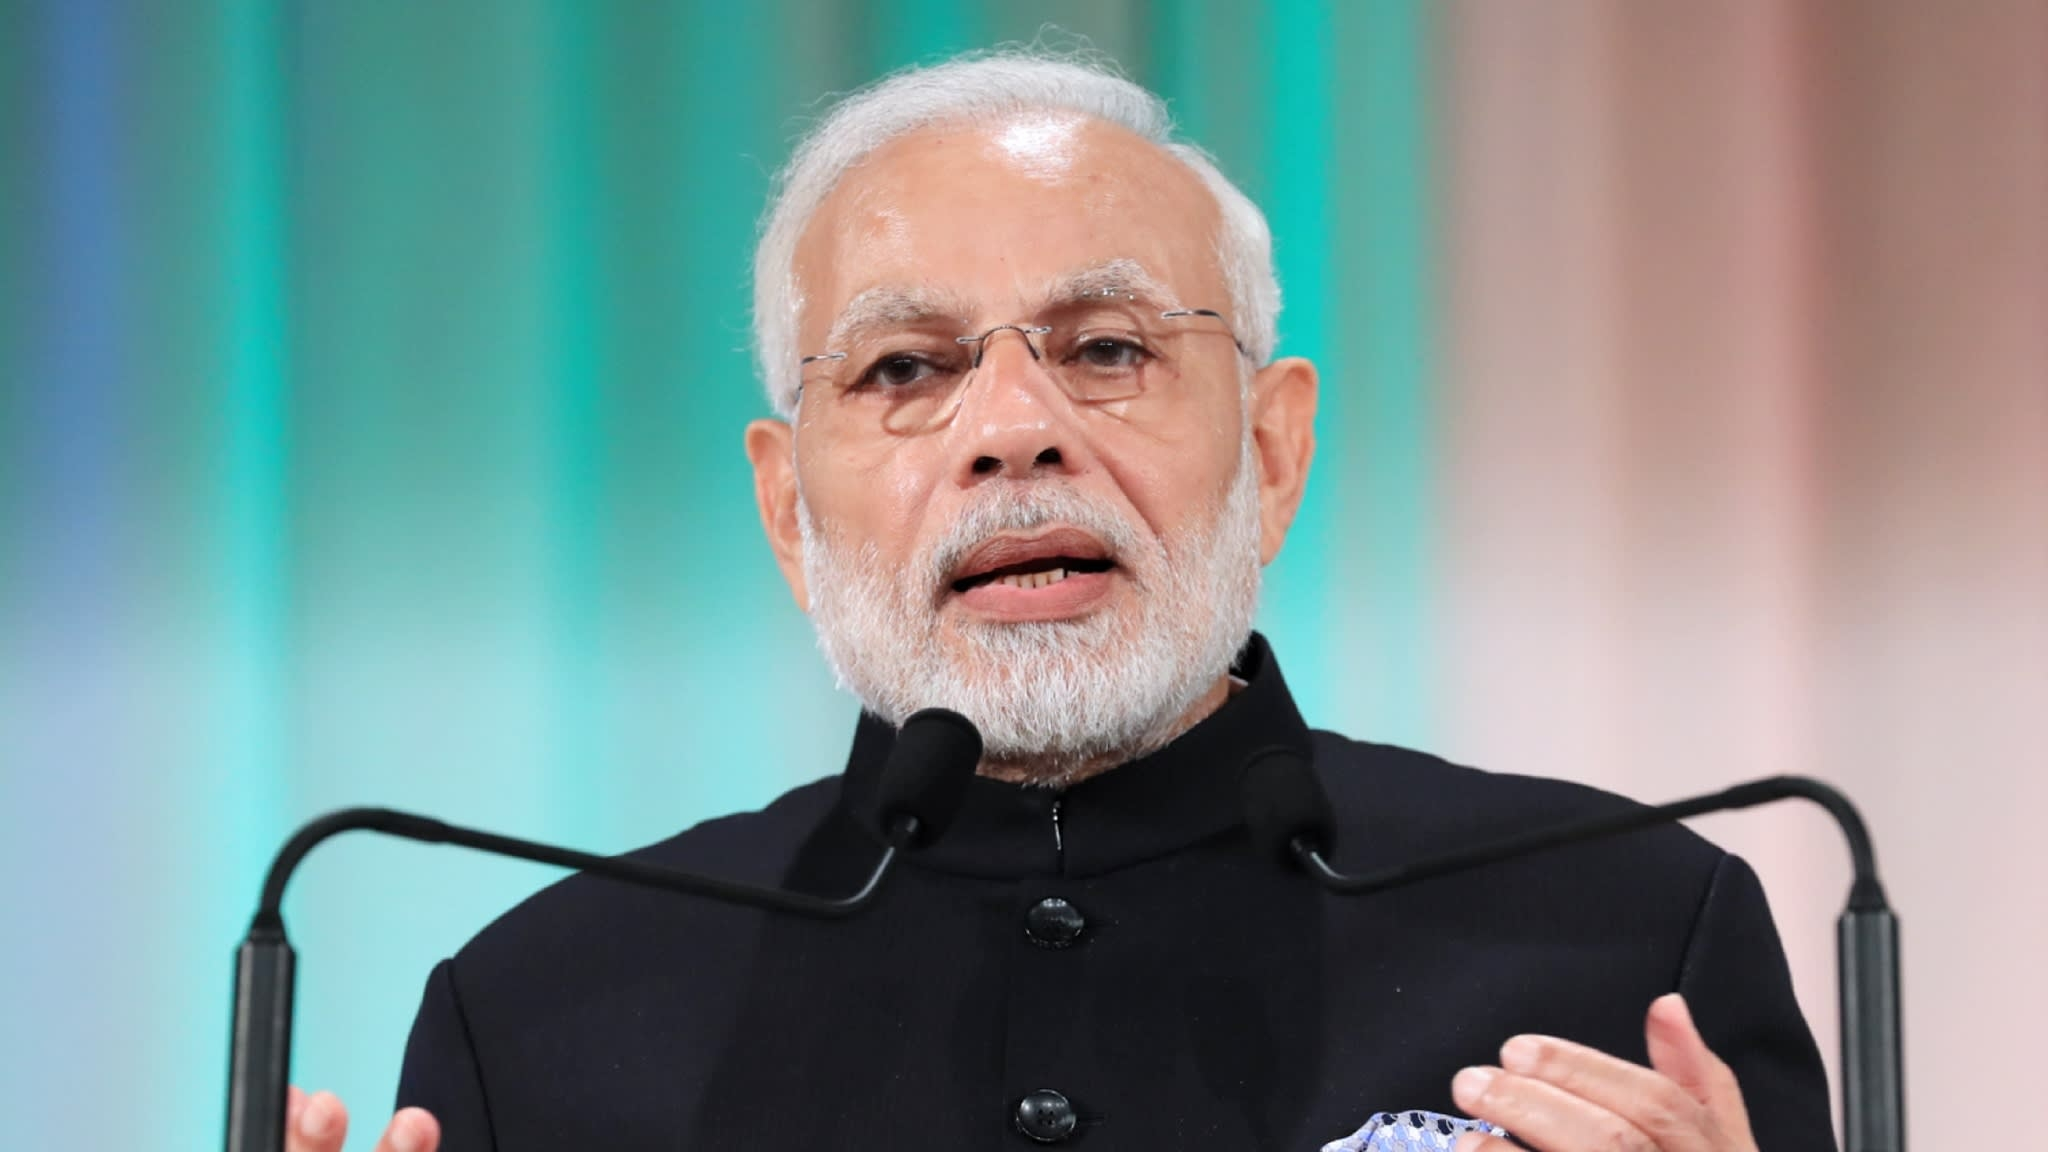 <p>PM to address 66th Convocation of IIT Kharagpur on February 23: Prime Minister Shri Narendra Modi will address the 66th Convocation of IIT Kharagpur, on 23rd February 2021 at 12:30…